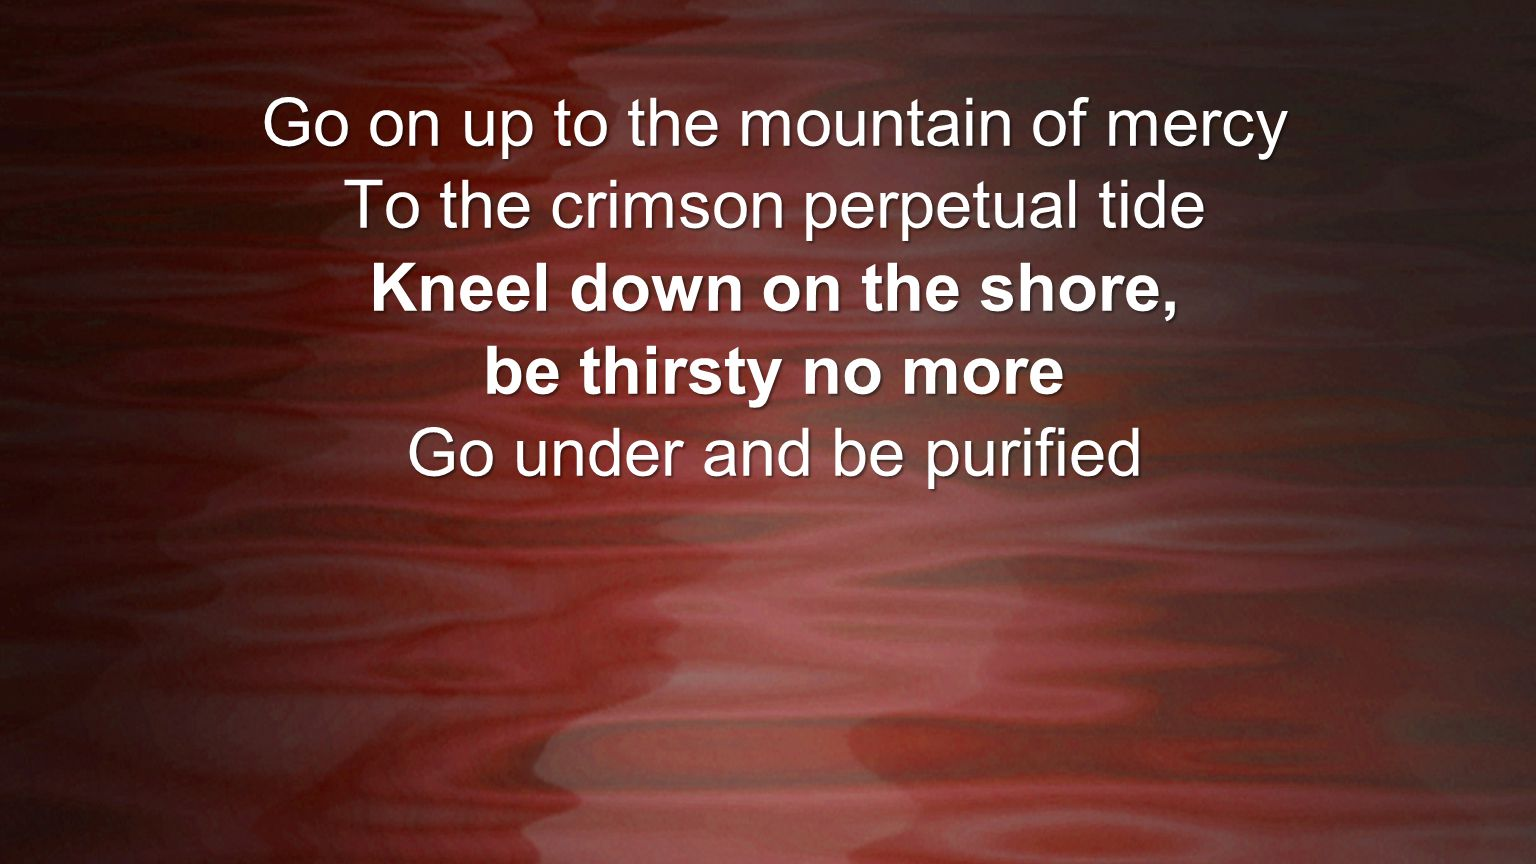 Kneel down on the shore, be thirsty no more